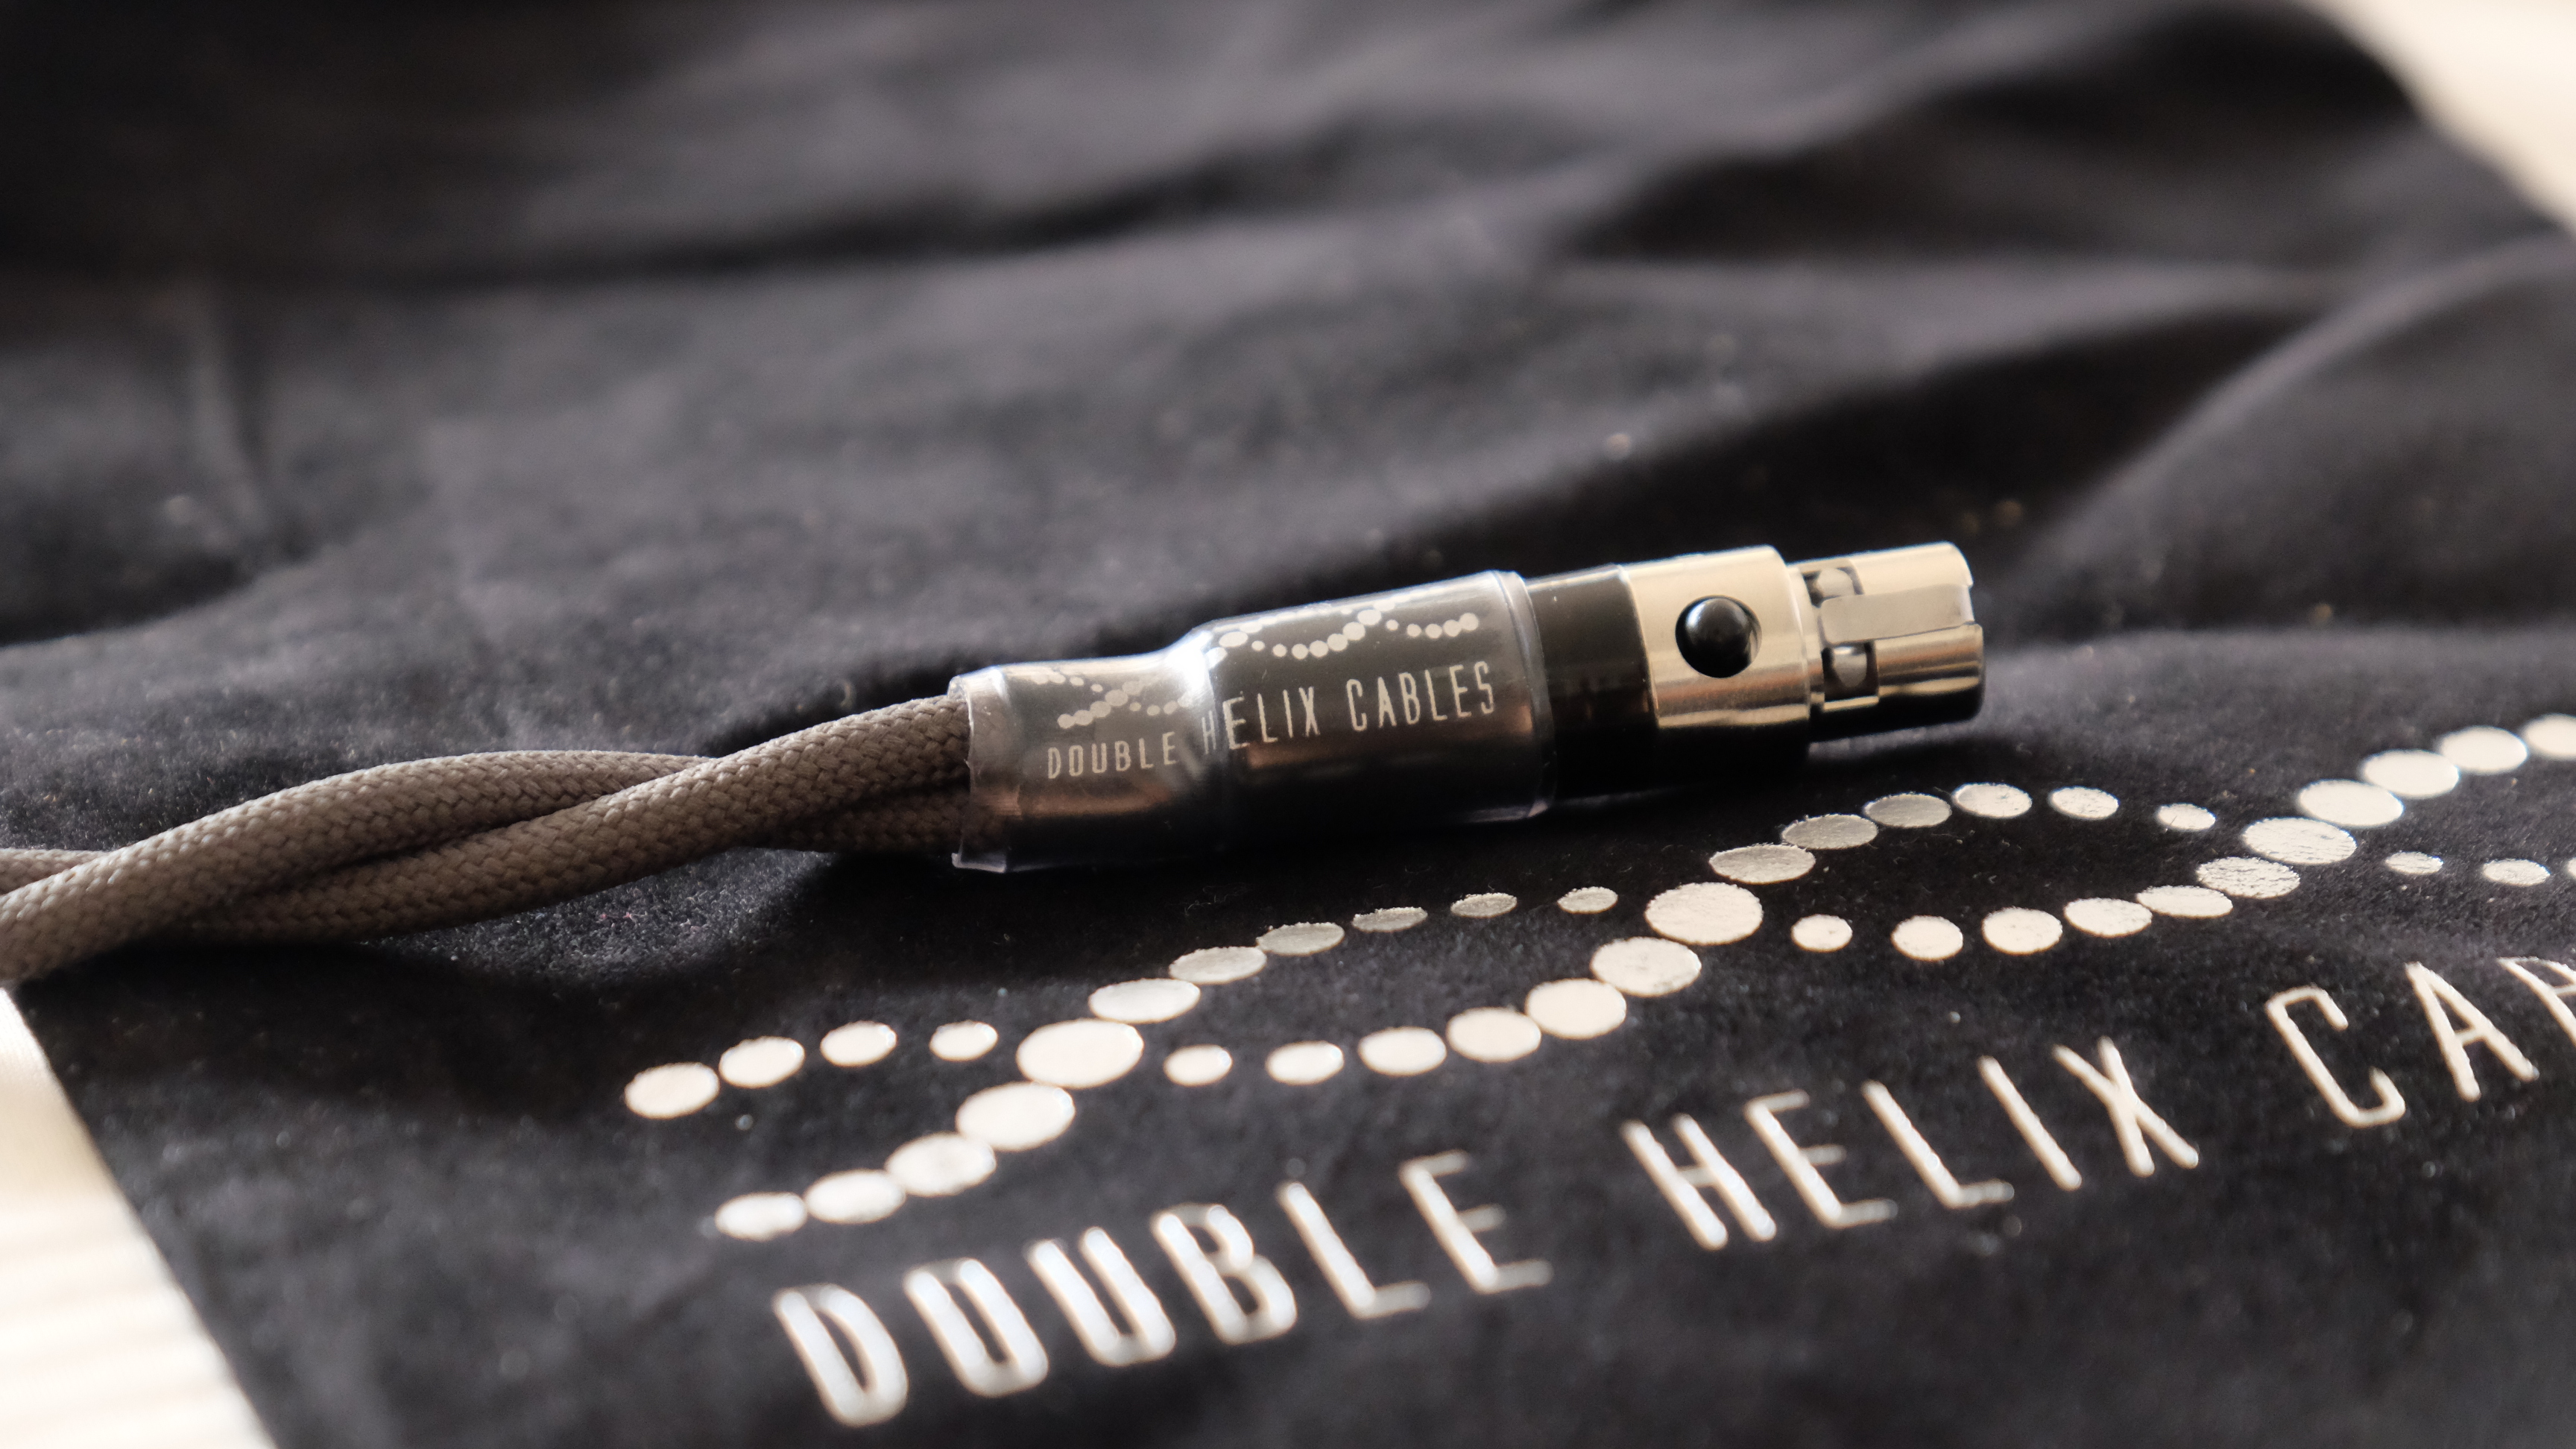 The Double Helix Cables Silver Complement4 – A Pristine Experience